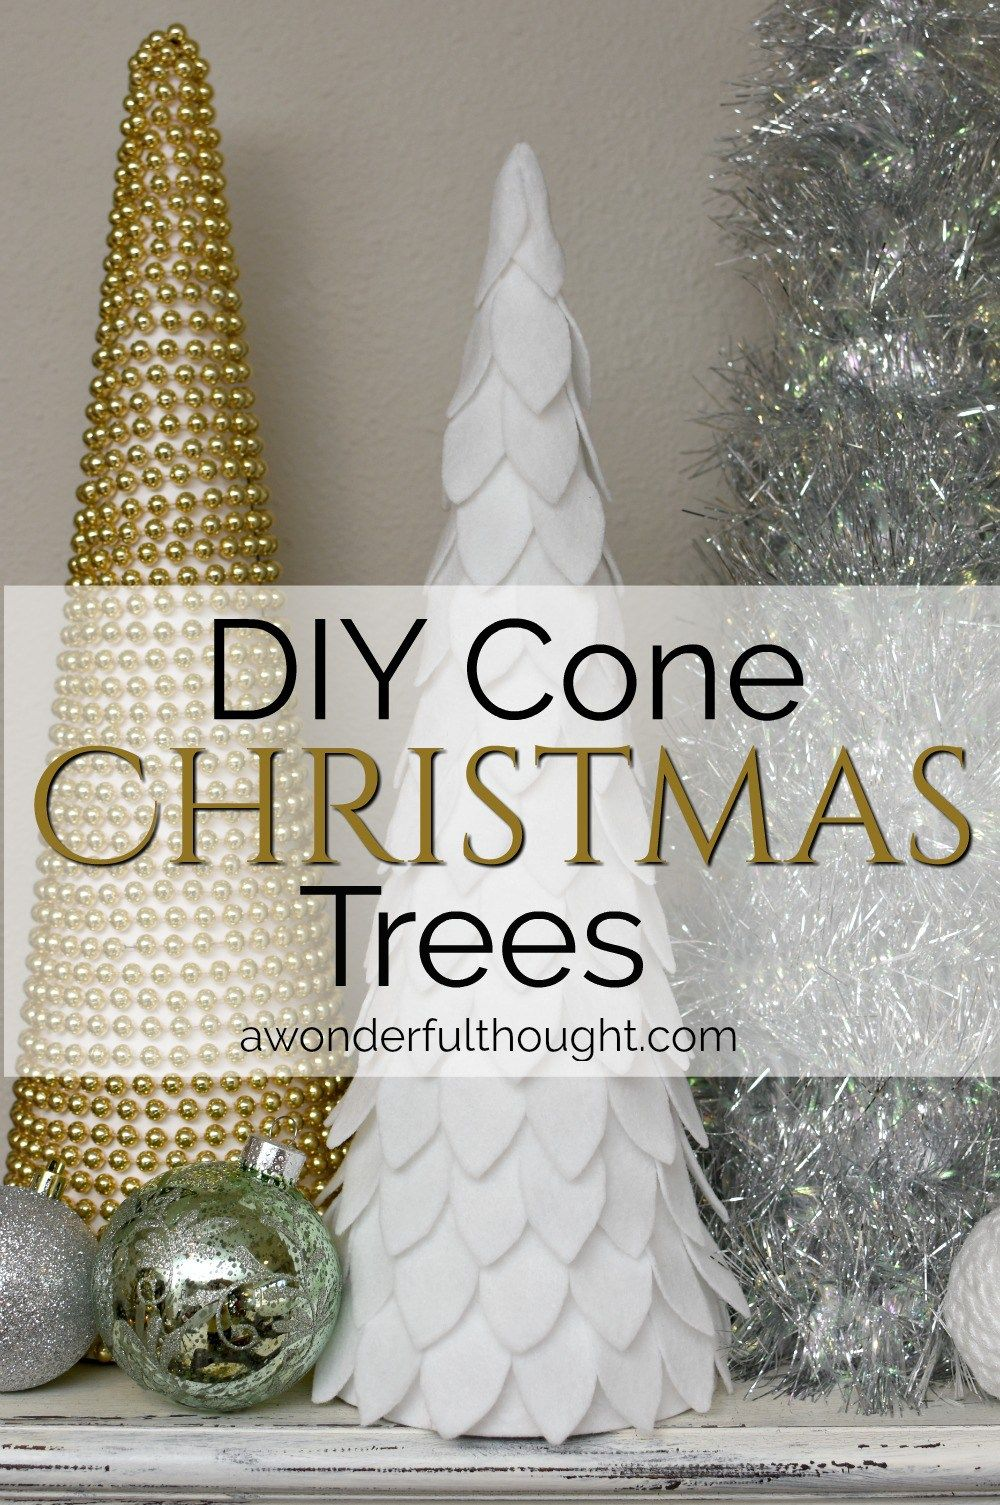 Diy Cone Christmas Trees.Diy Cone Christmas Trees A Wonderful Thought Cone Christmas